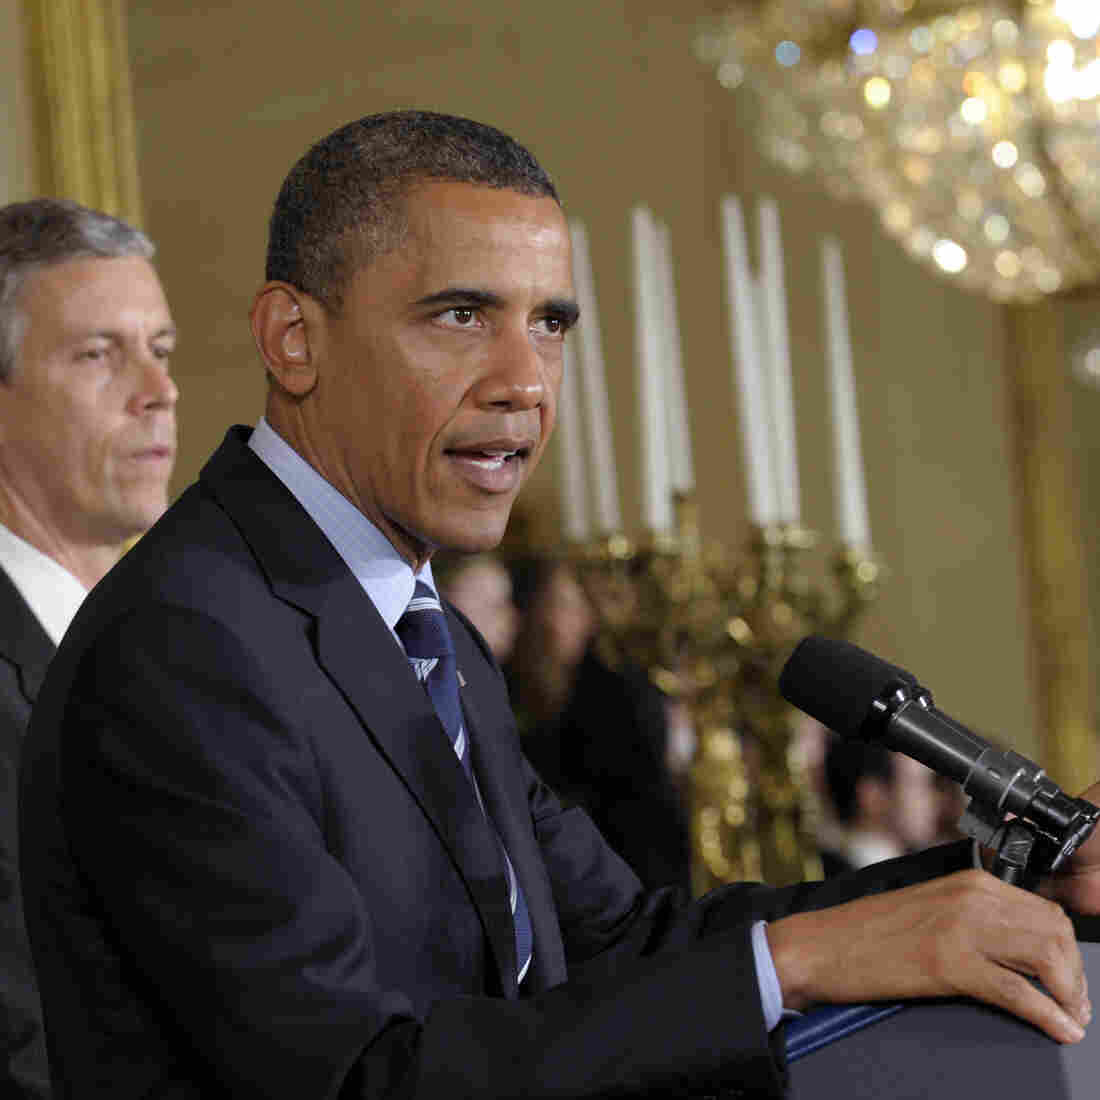 President Obama, with Education Secretary Arne Duncan at his side, calls on Congress on June 21, 2012, to stop interest rates on student loans from doubling. He is going to make that appeal again Friday.